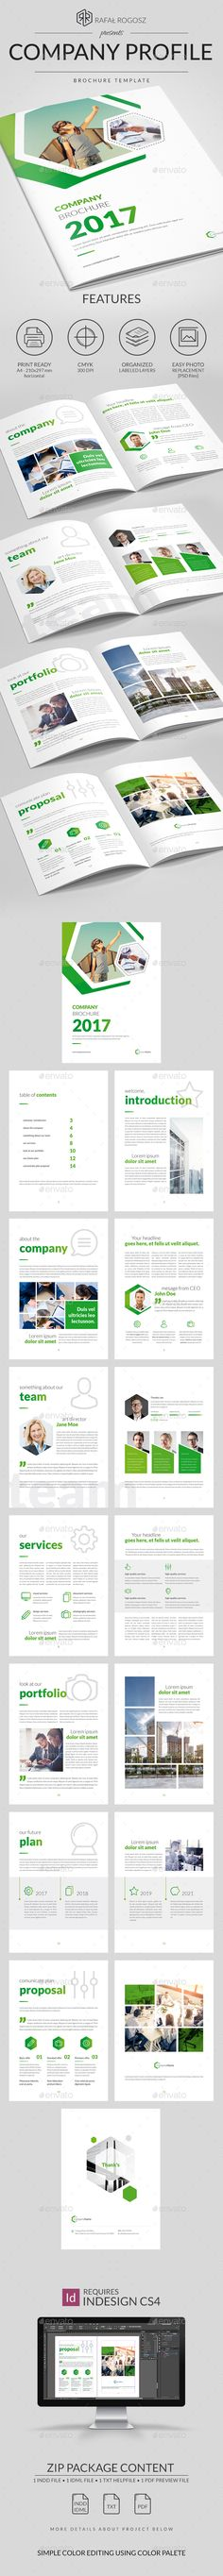 Company Profile Template InDesign INDD Inspire for work - it company profile template